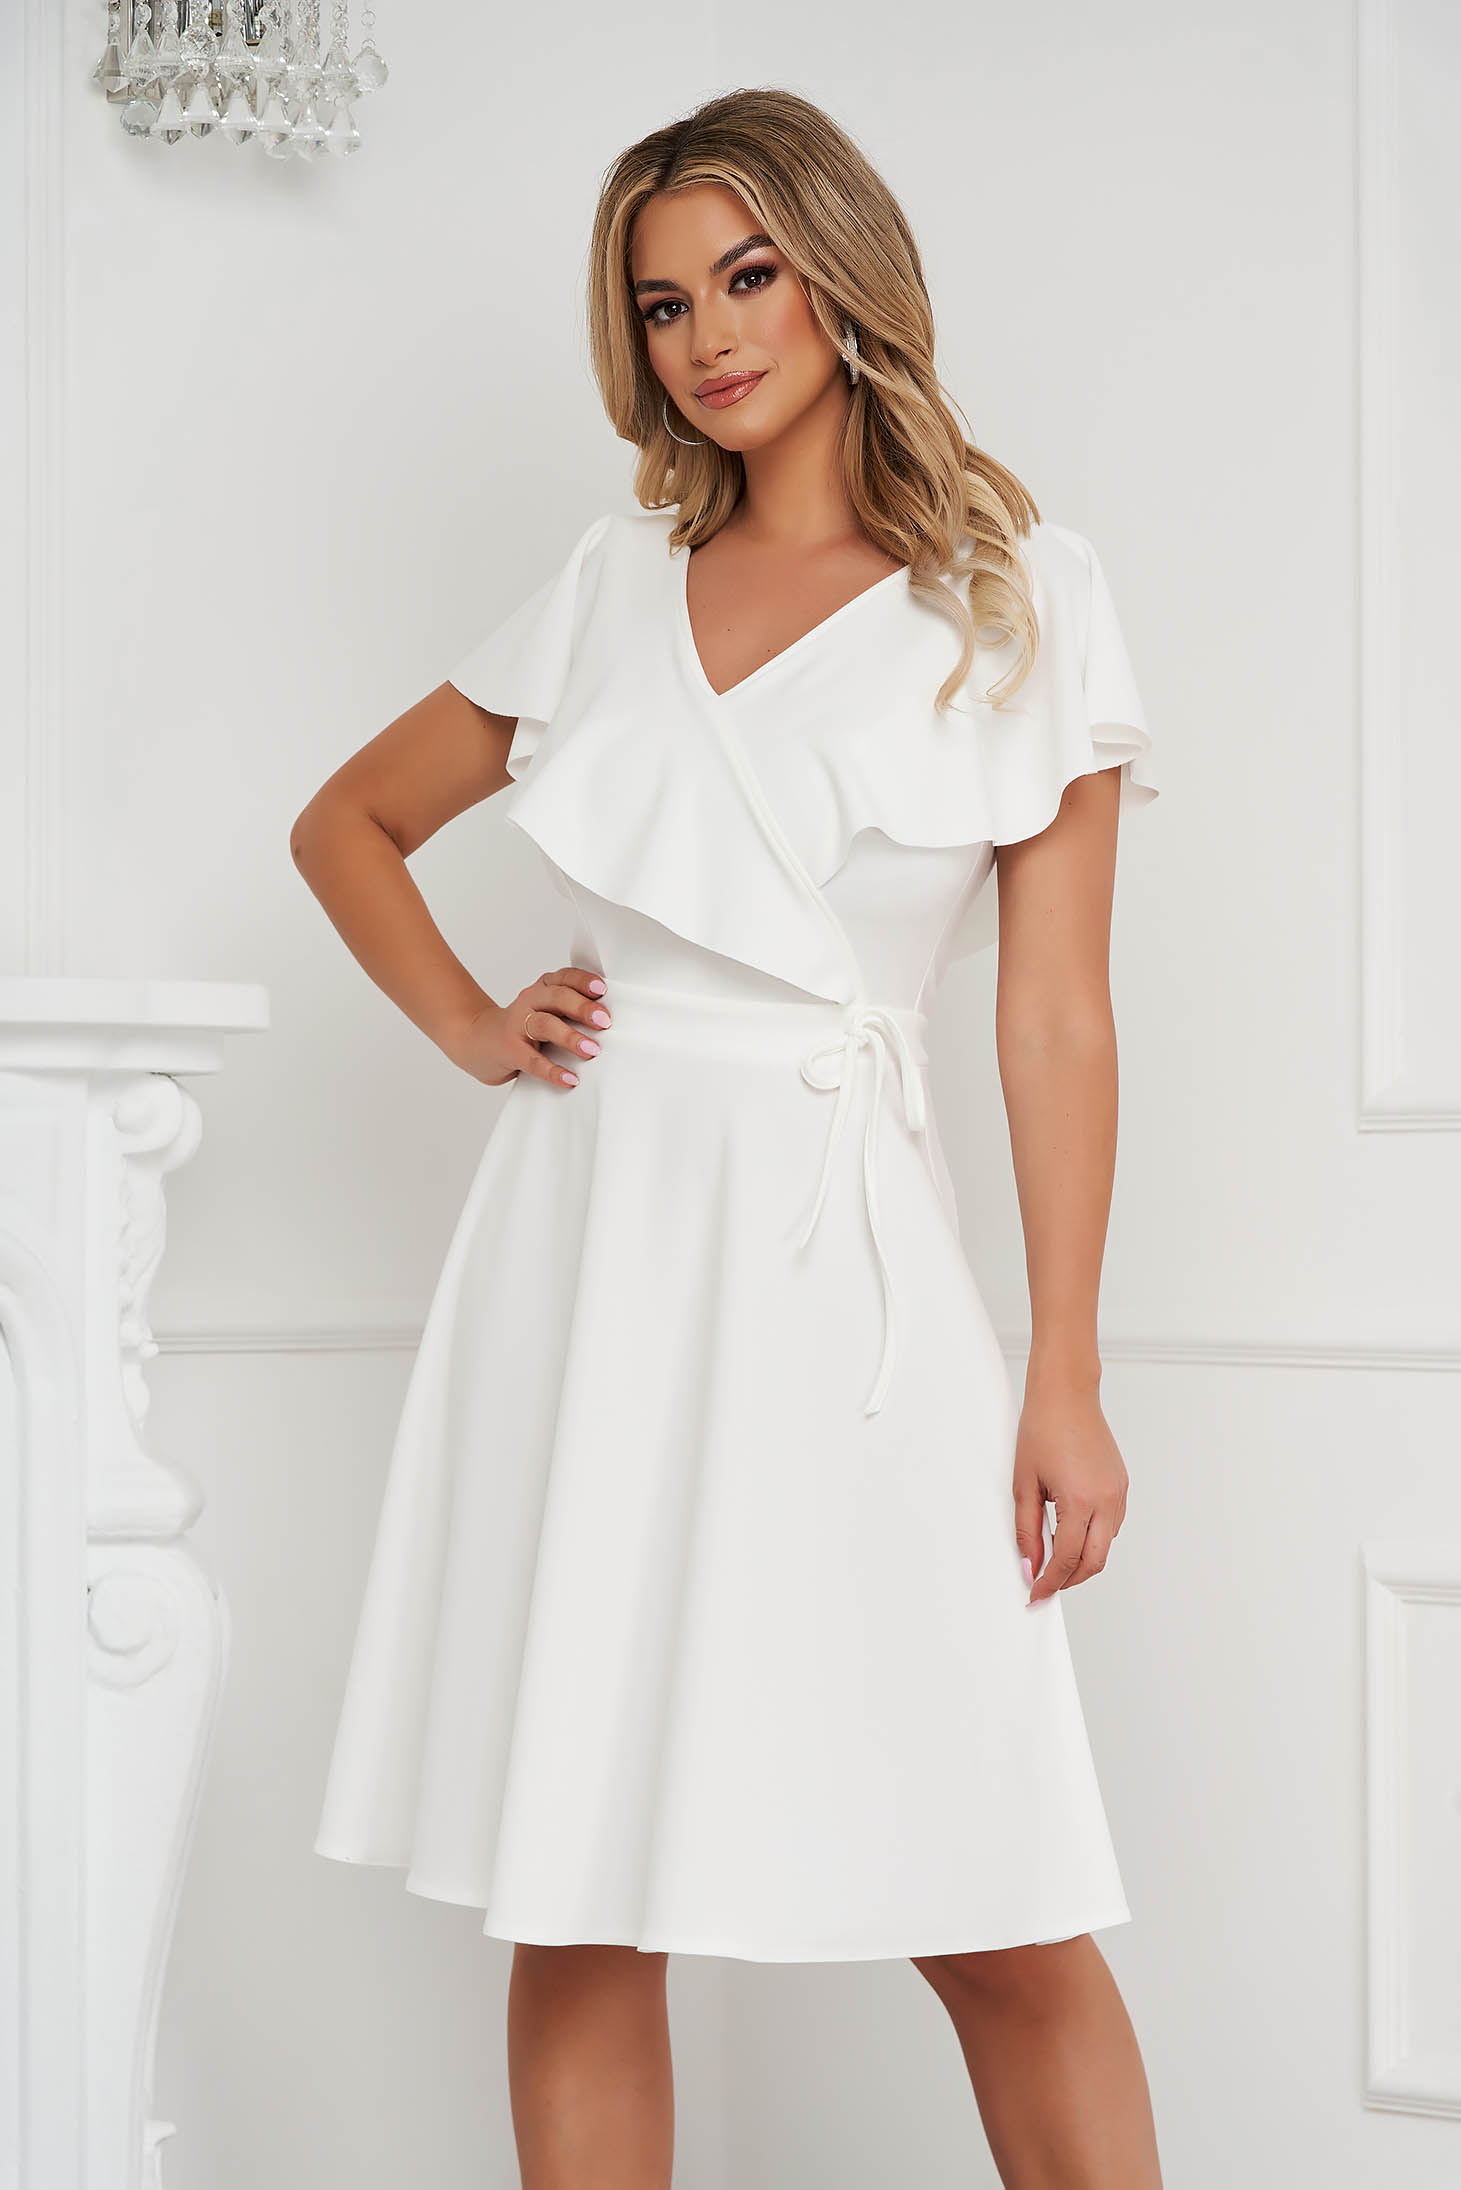 StarShinerS ivory dress short cut cloche frilly trim around cleavage line